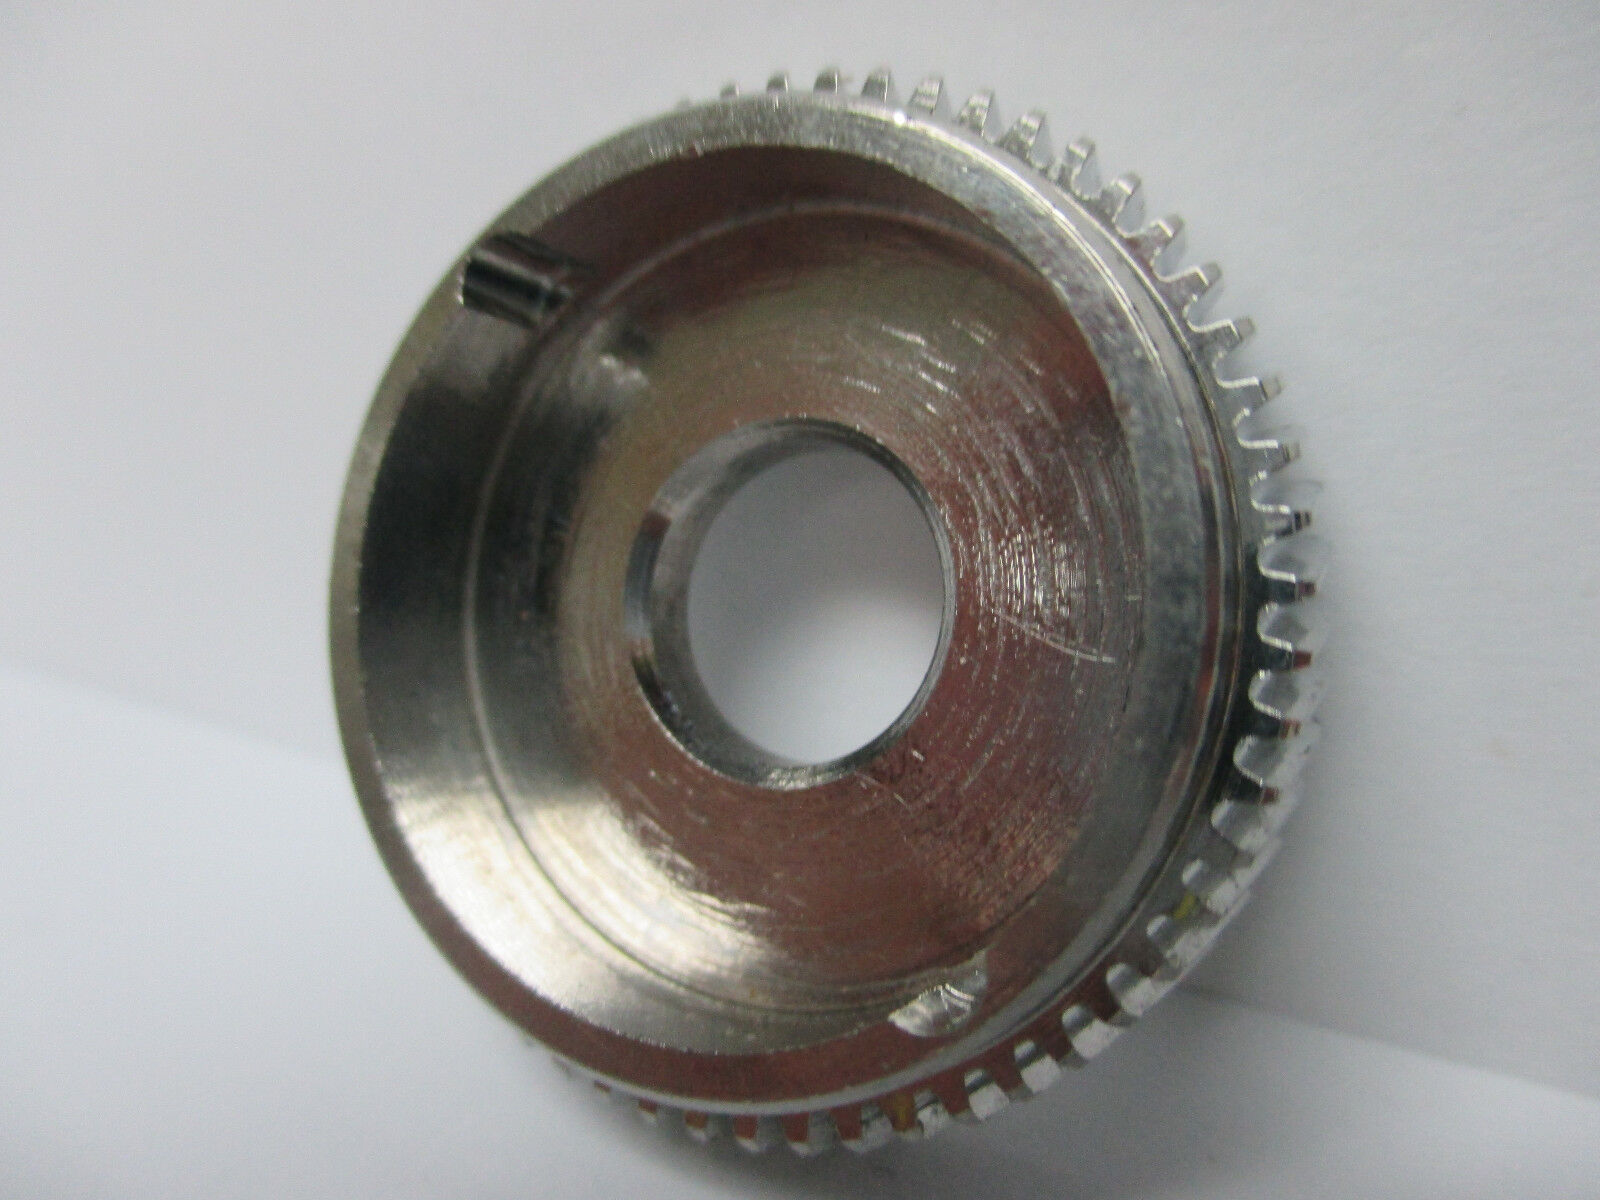 NEW NEWELL CONVENTIONAL REEL PART - 338 5 - Main Gear